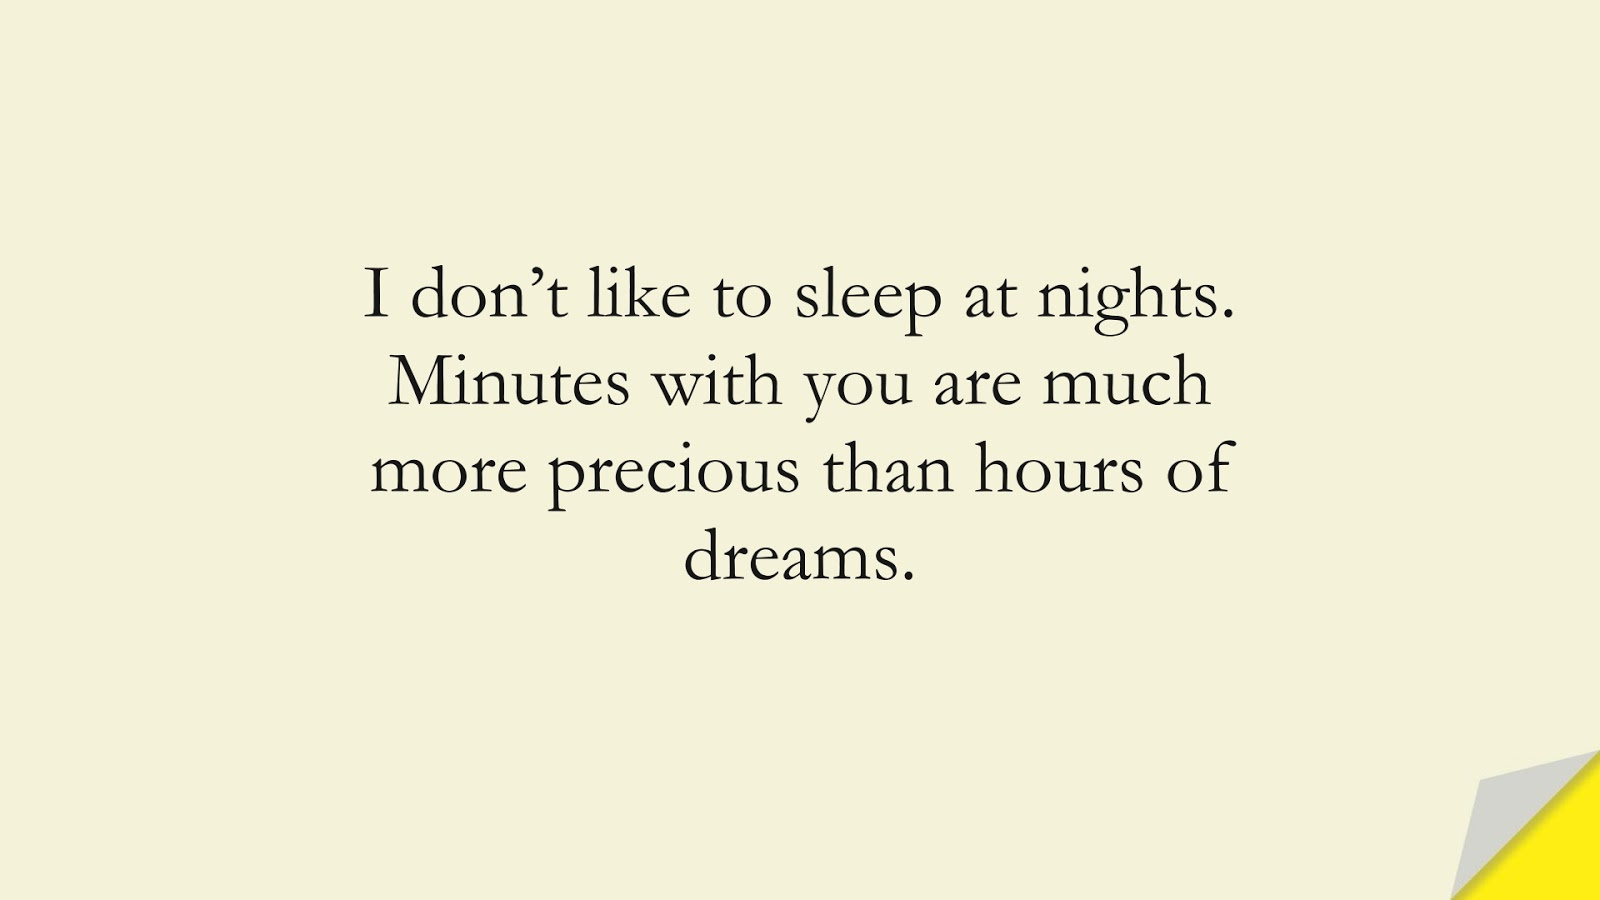 I don't like to sleep at nights. Minutes with you are much more precious than hours of dreams.FALSE